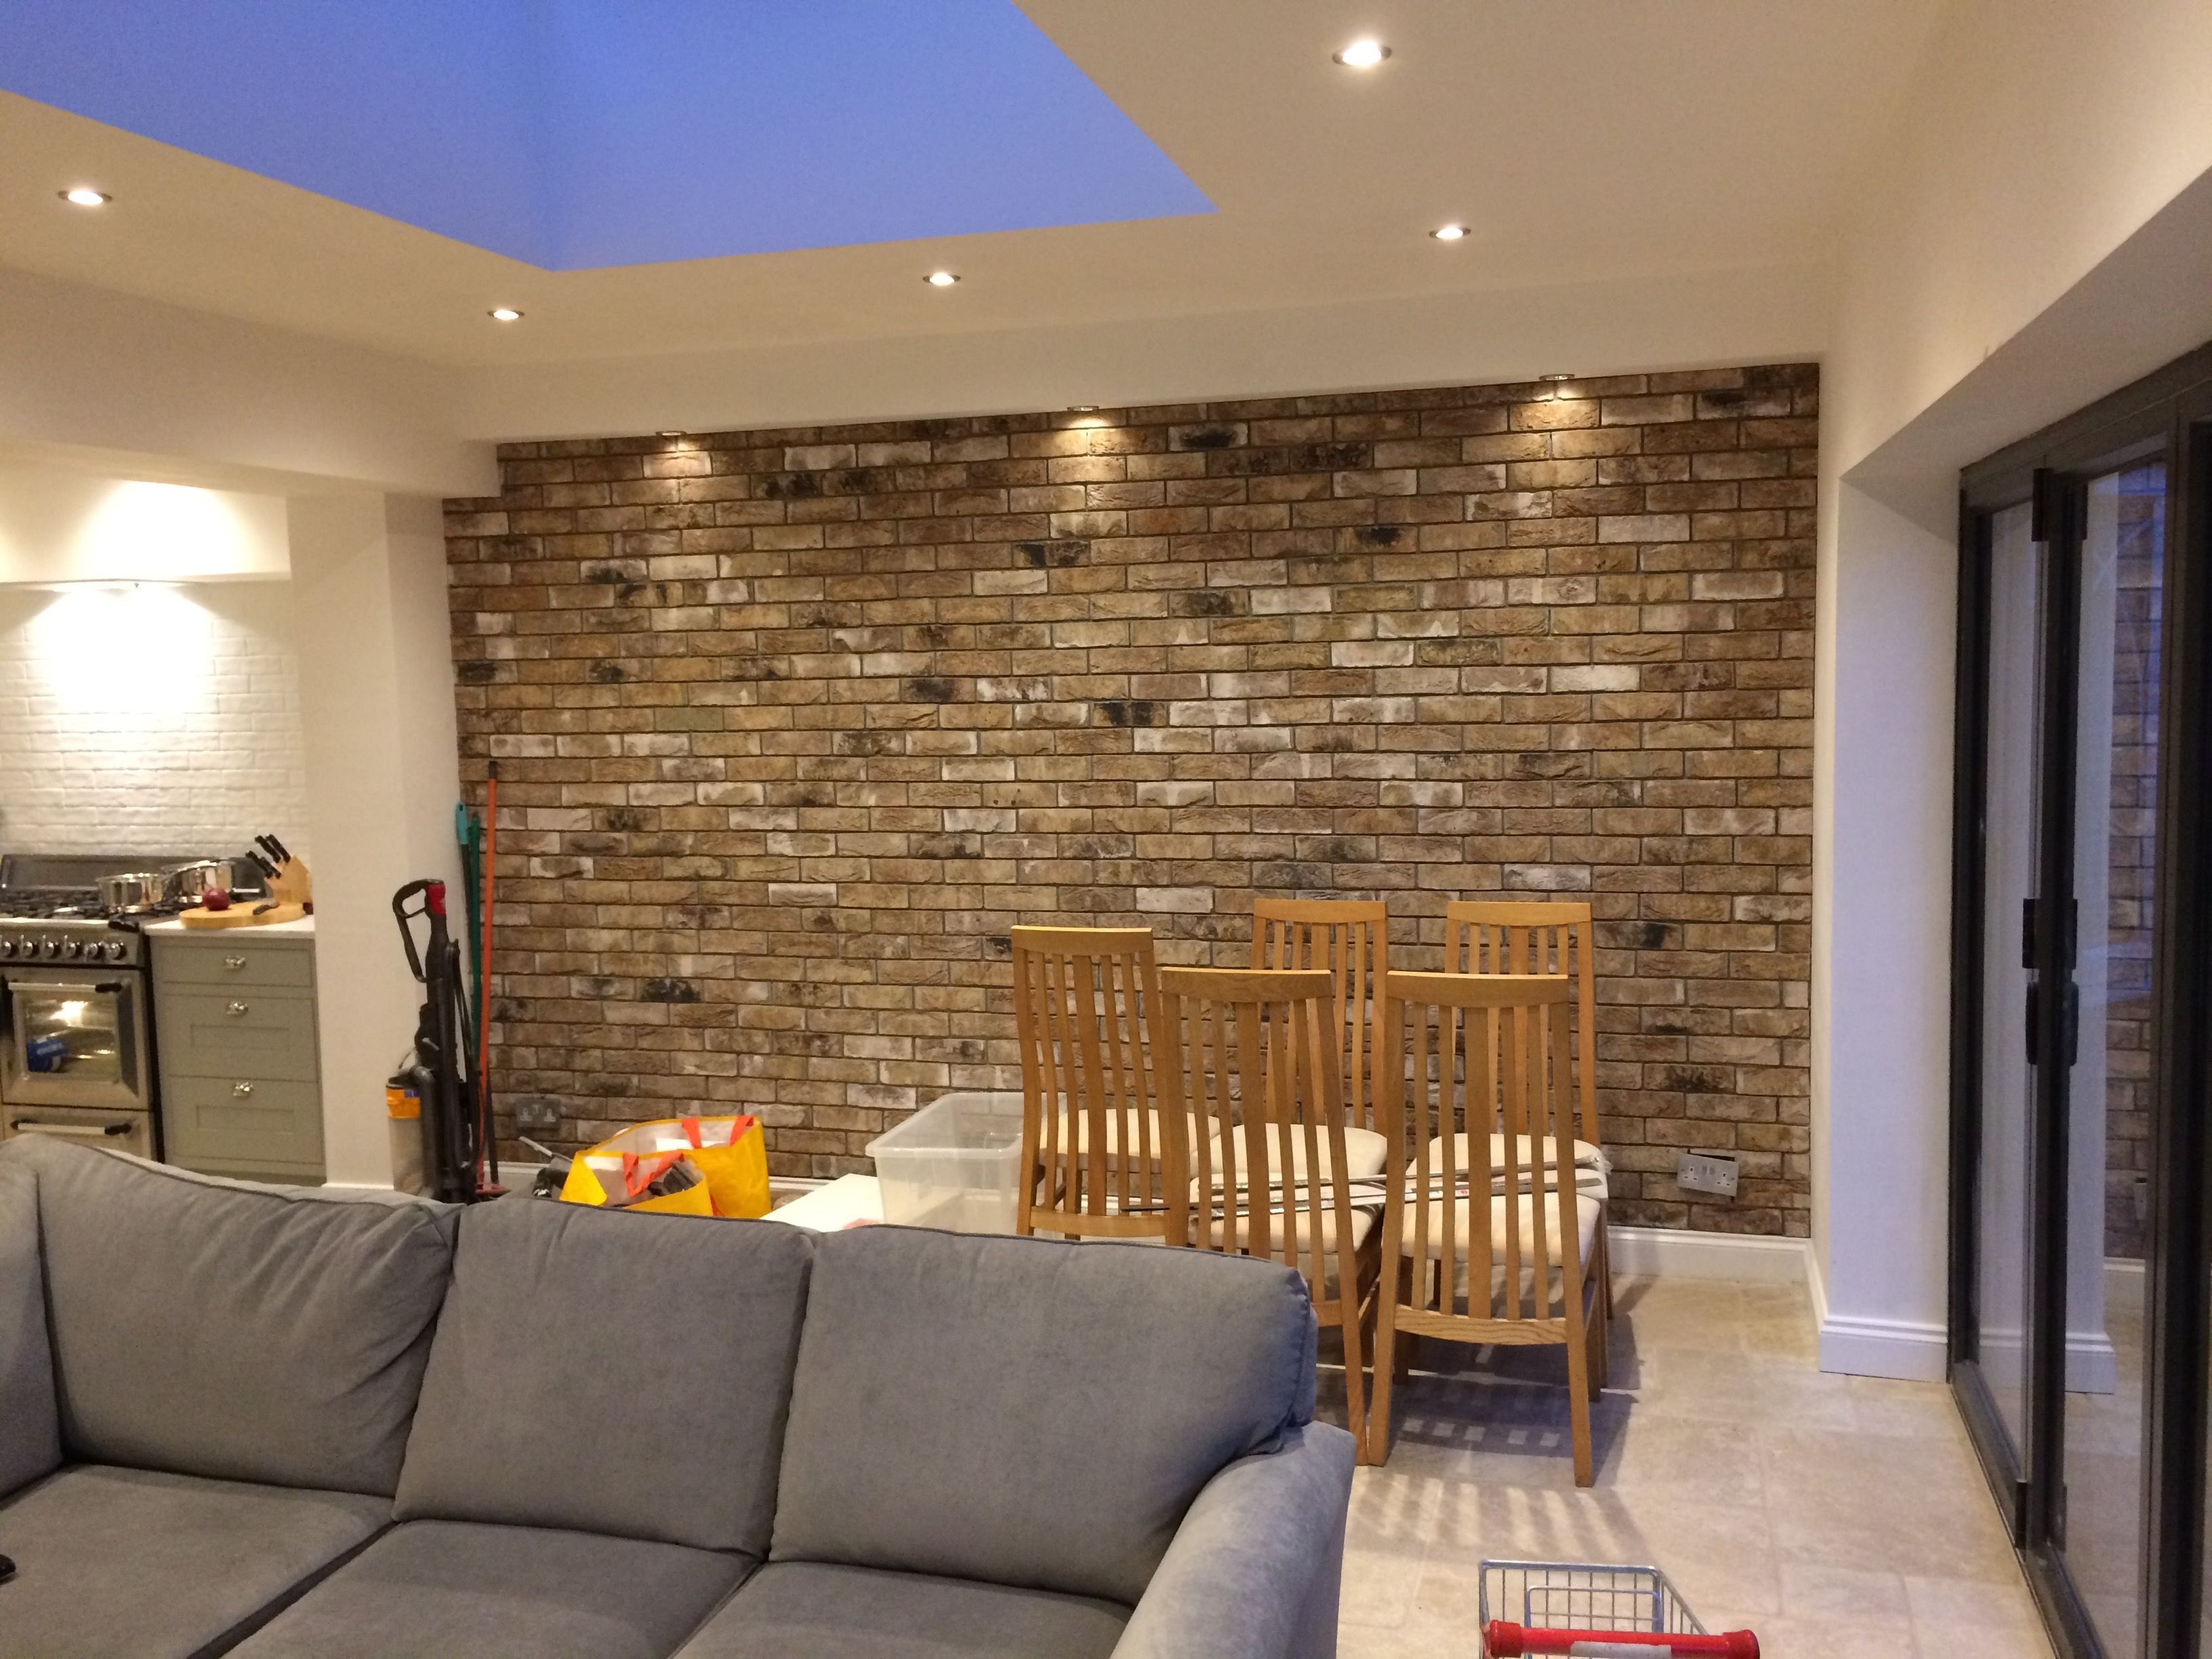 Brick Slip Internal Wall Brick Wall Living Room Brick Feature